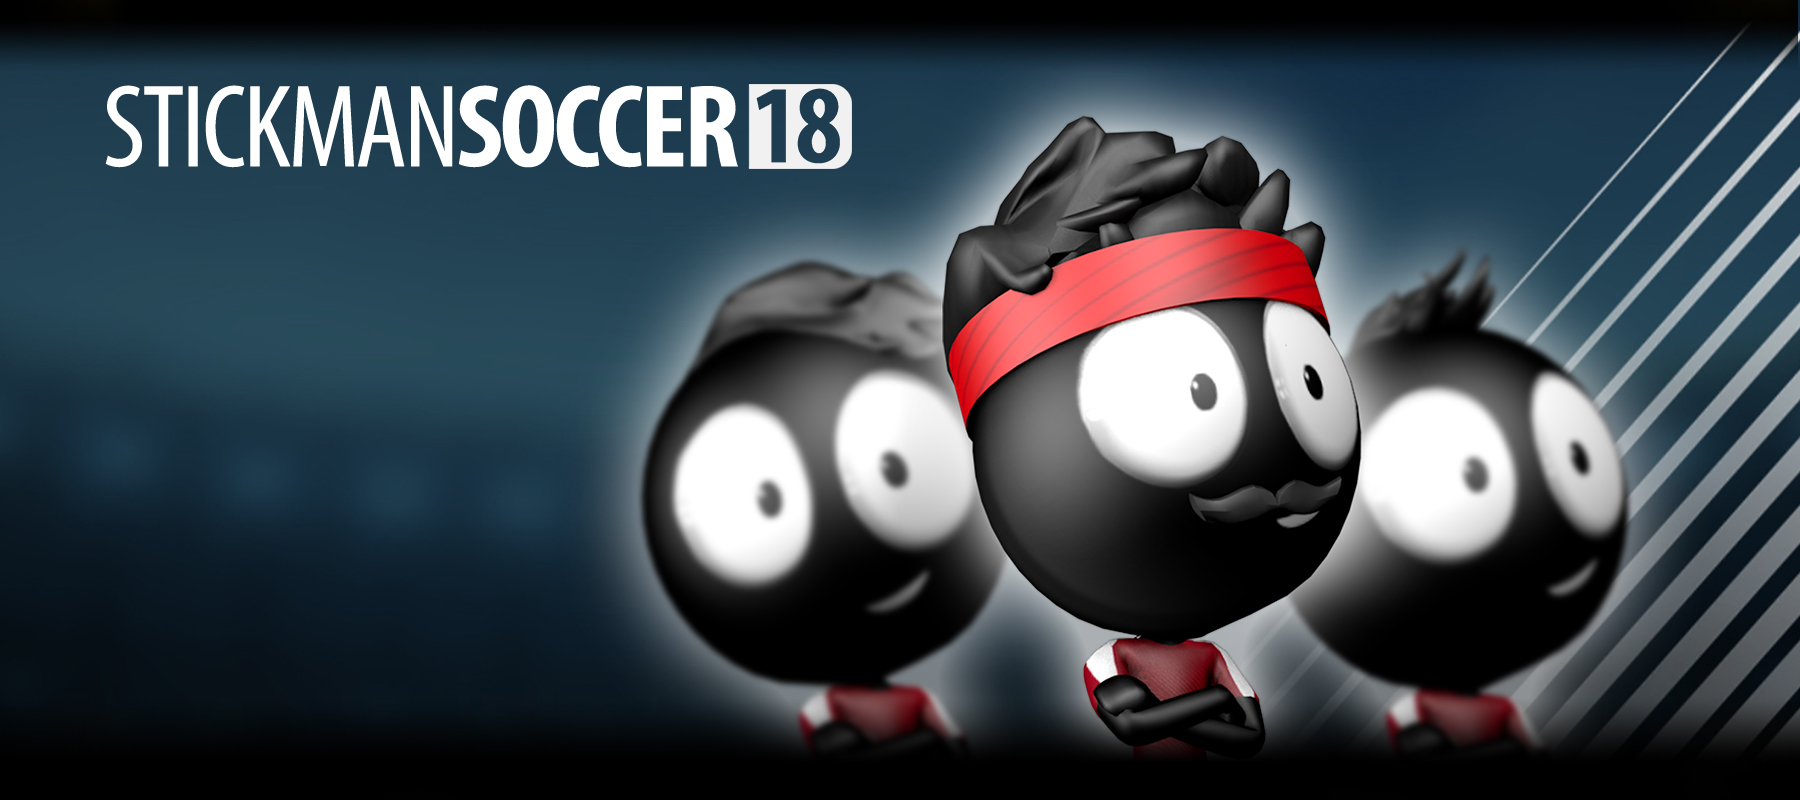 BannerSoccer18_01